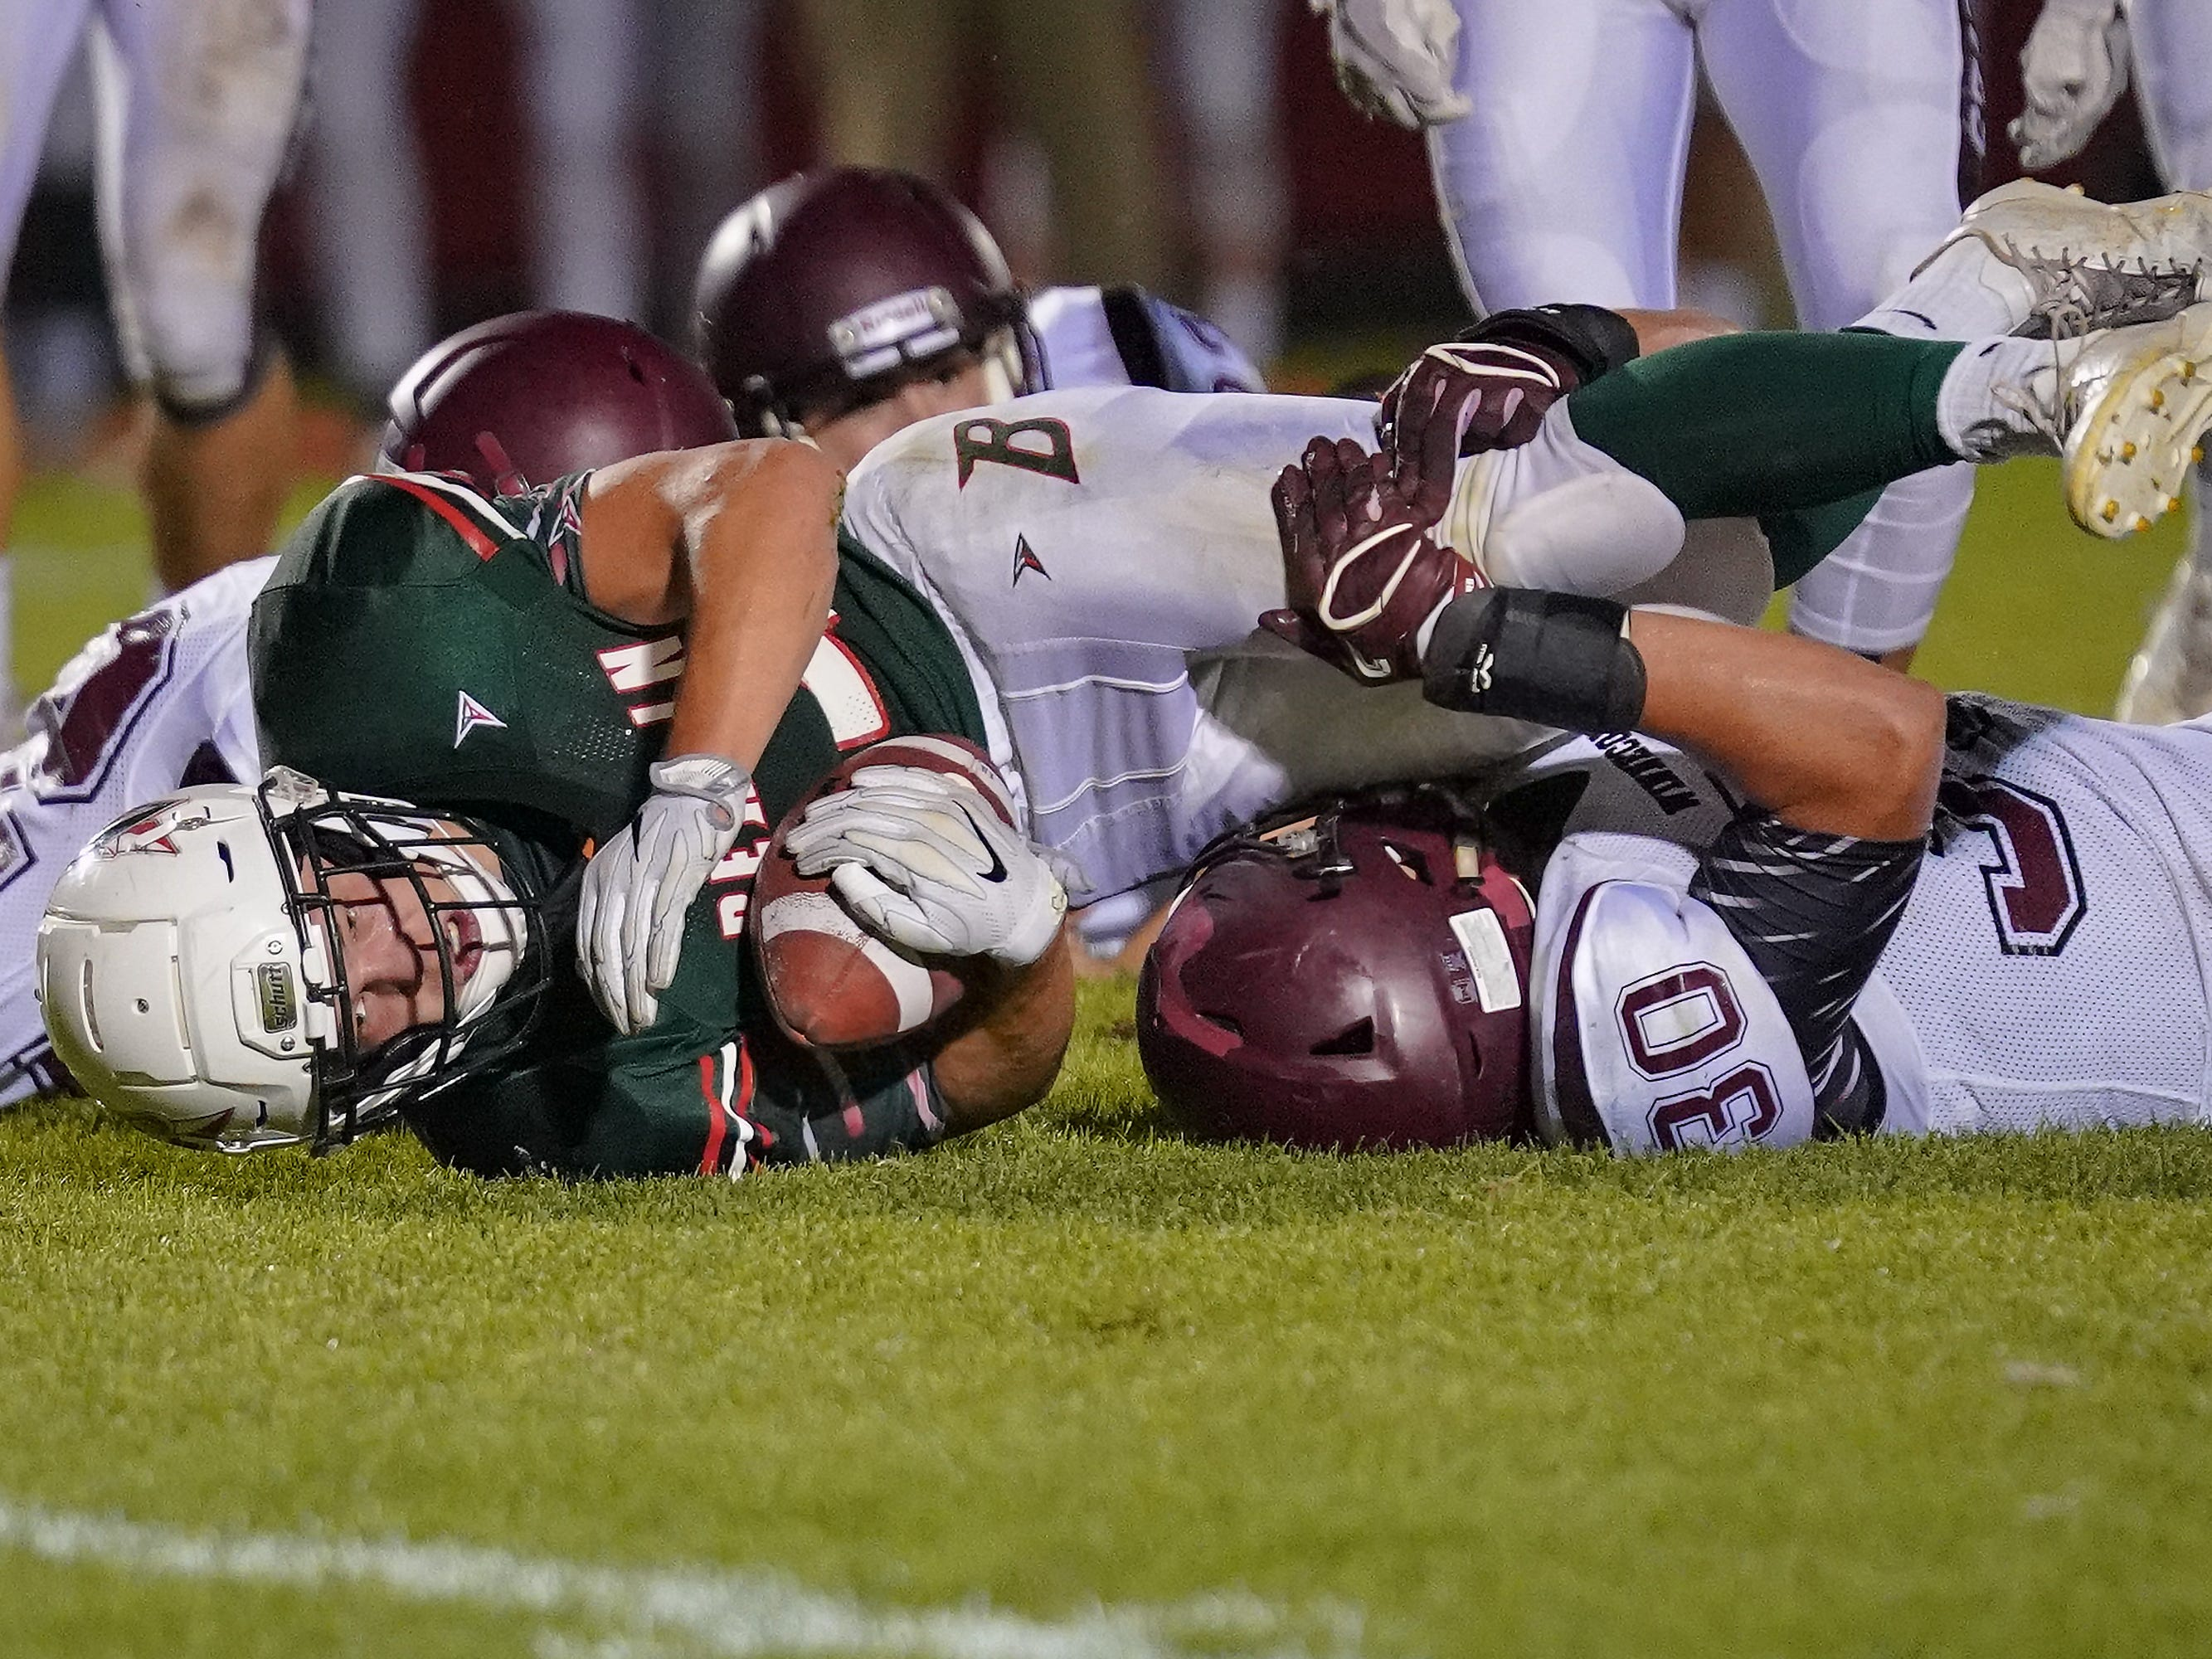 Aidan Schilling (24) of Berlin gets tackled by three Winneconne defenders. The Berlin Indians hosted the Winneconne Wolves in an East Central Conference matchup Friday evening, September 14, 2018.